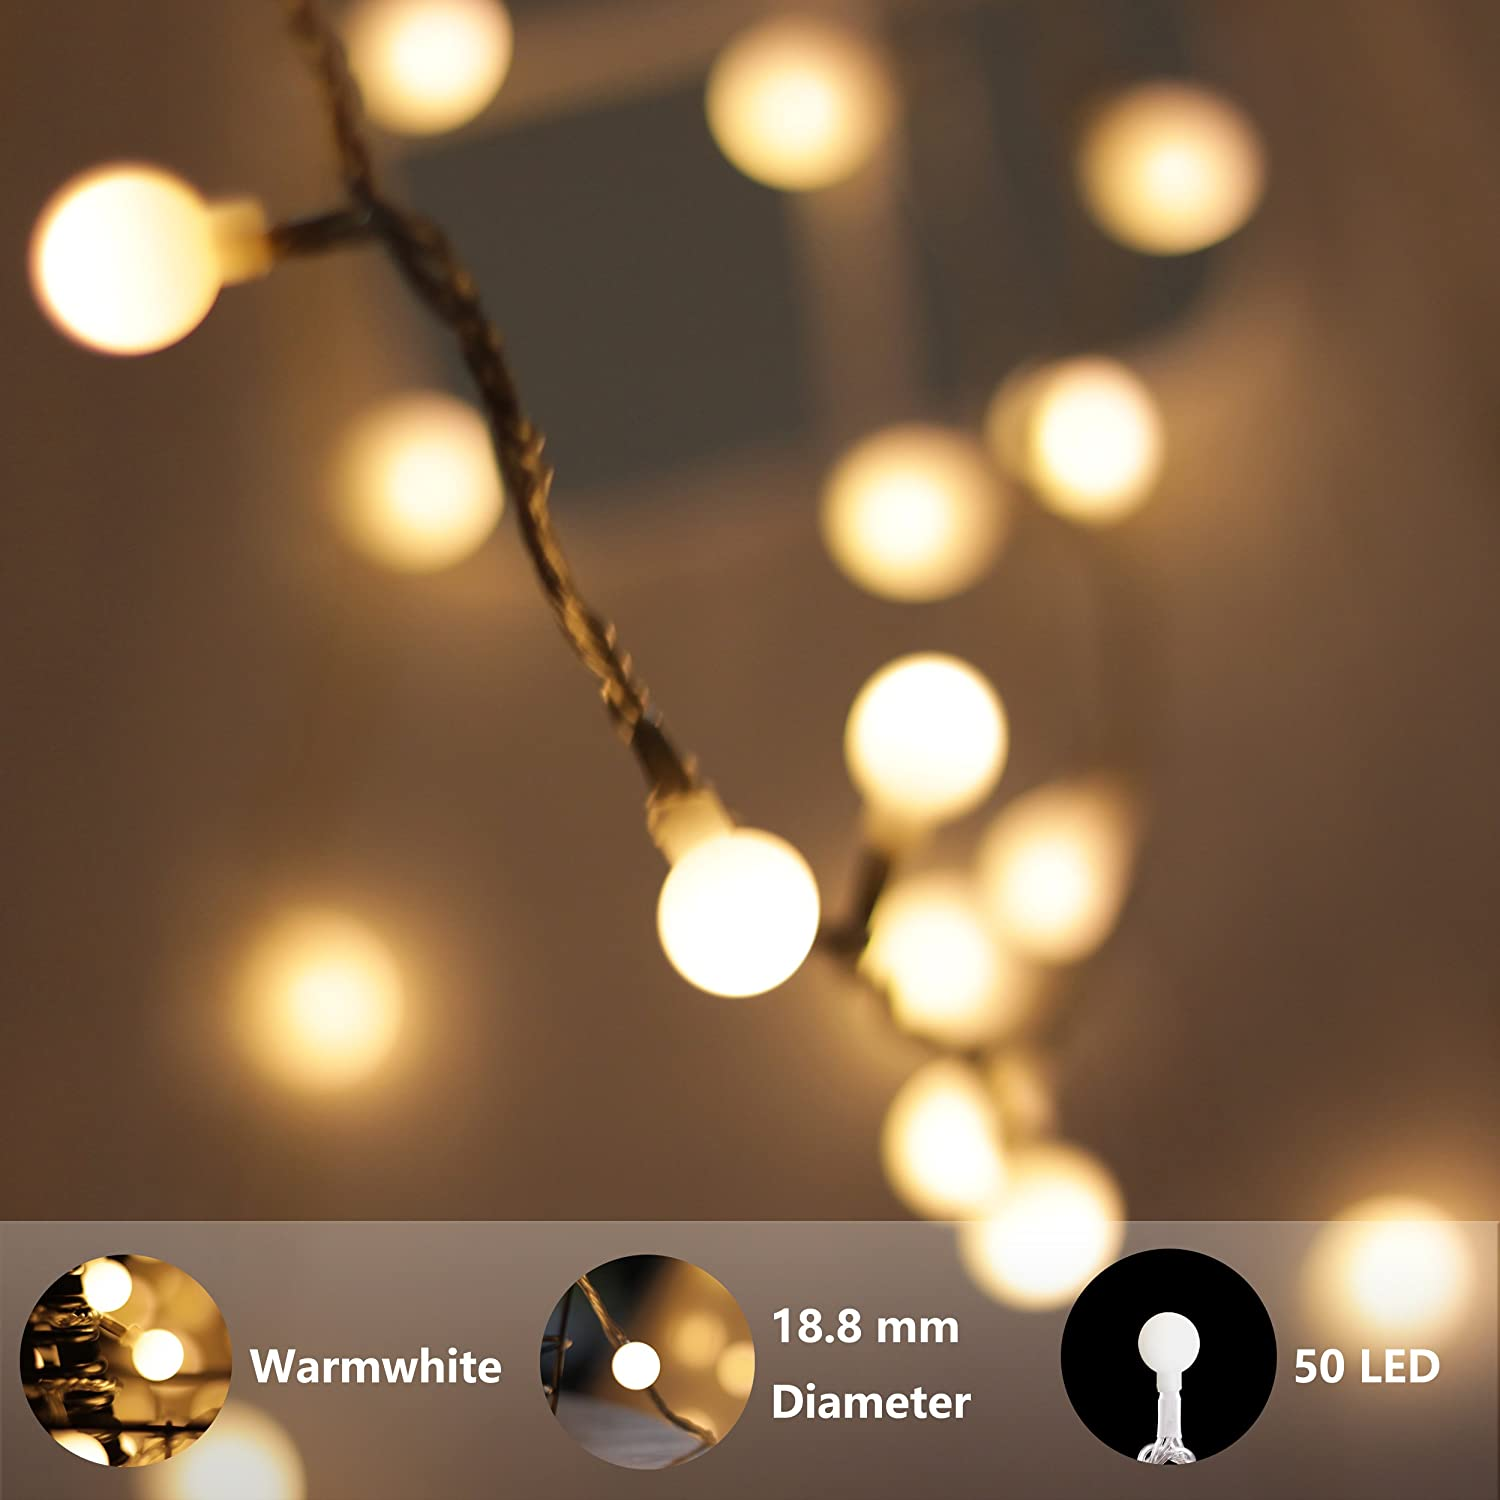 Patio 50 LED Decorative Warm White String Lights for Wedding Party Battery and USB Operated Garden Remote Control with Timer MCL/_50/_G/_B/_Flash Room Holiday myCozyLite LED Globe String Lights